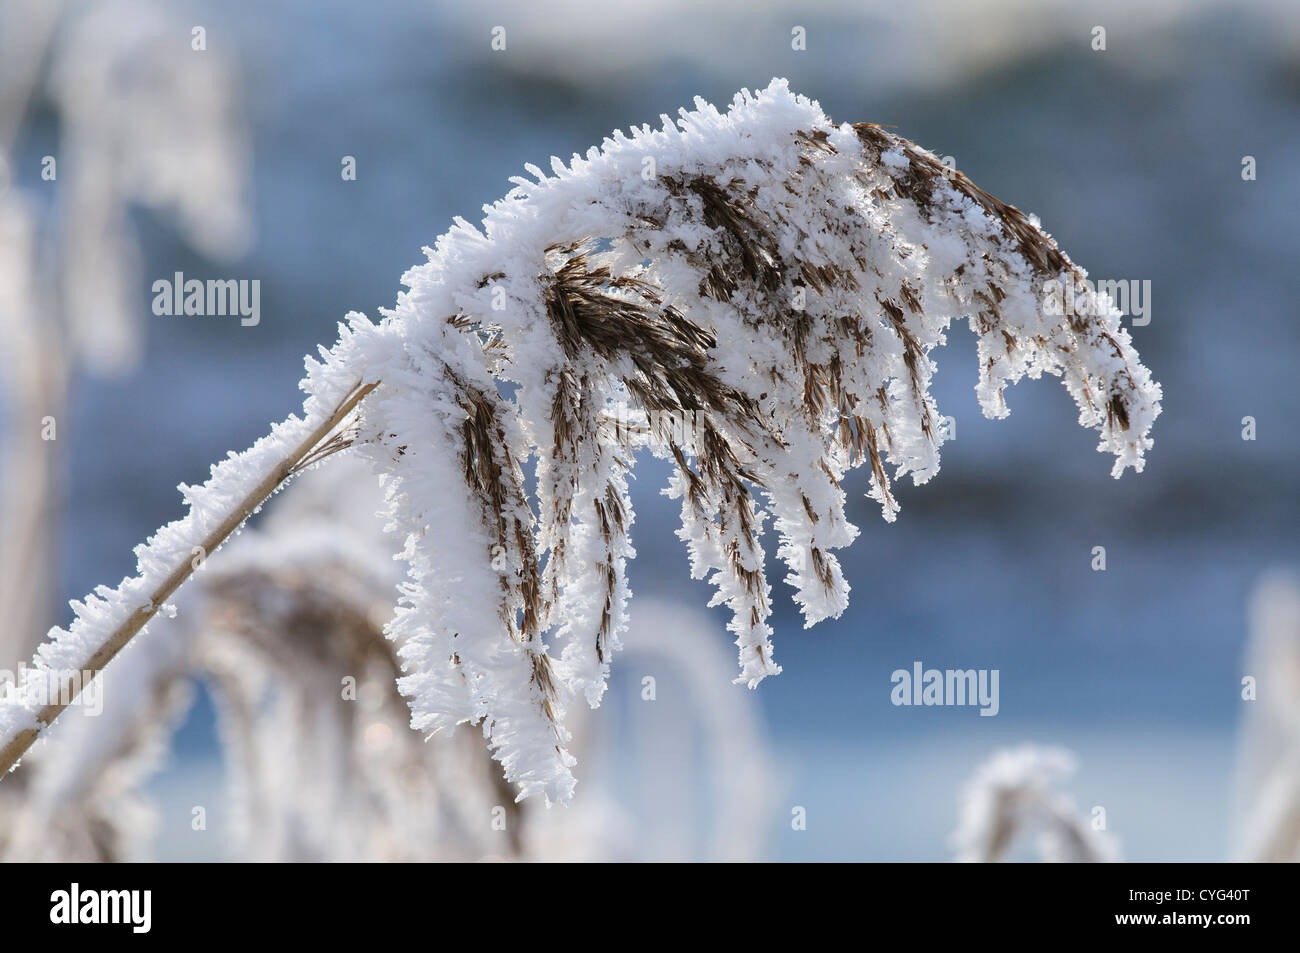 Common reed covered in frost - Stock Image